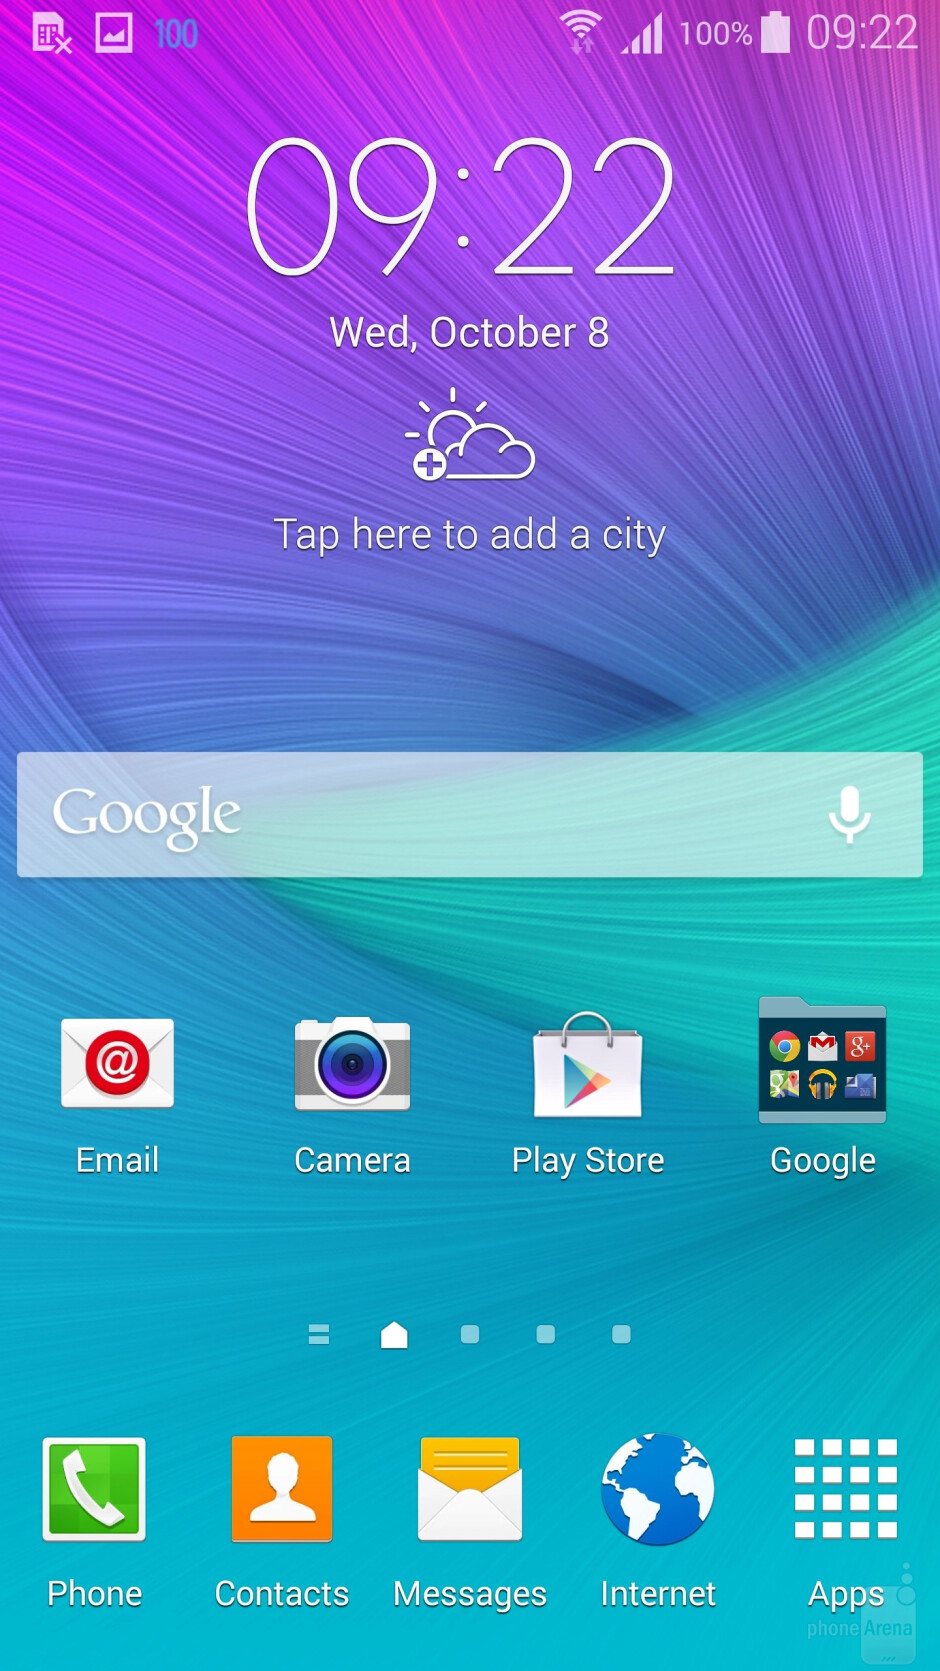 The UI of the Samsung Galaxy Note 4 - Samsung Galaxy Note 4 vs HTC One (M8)